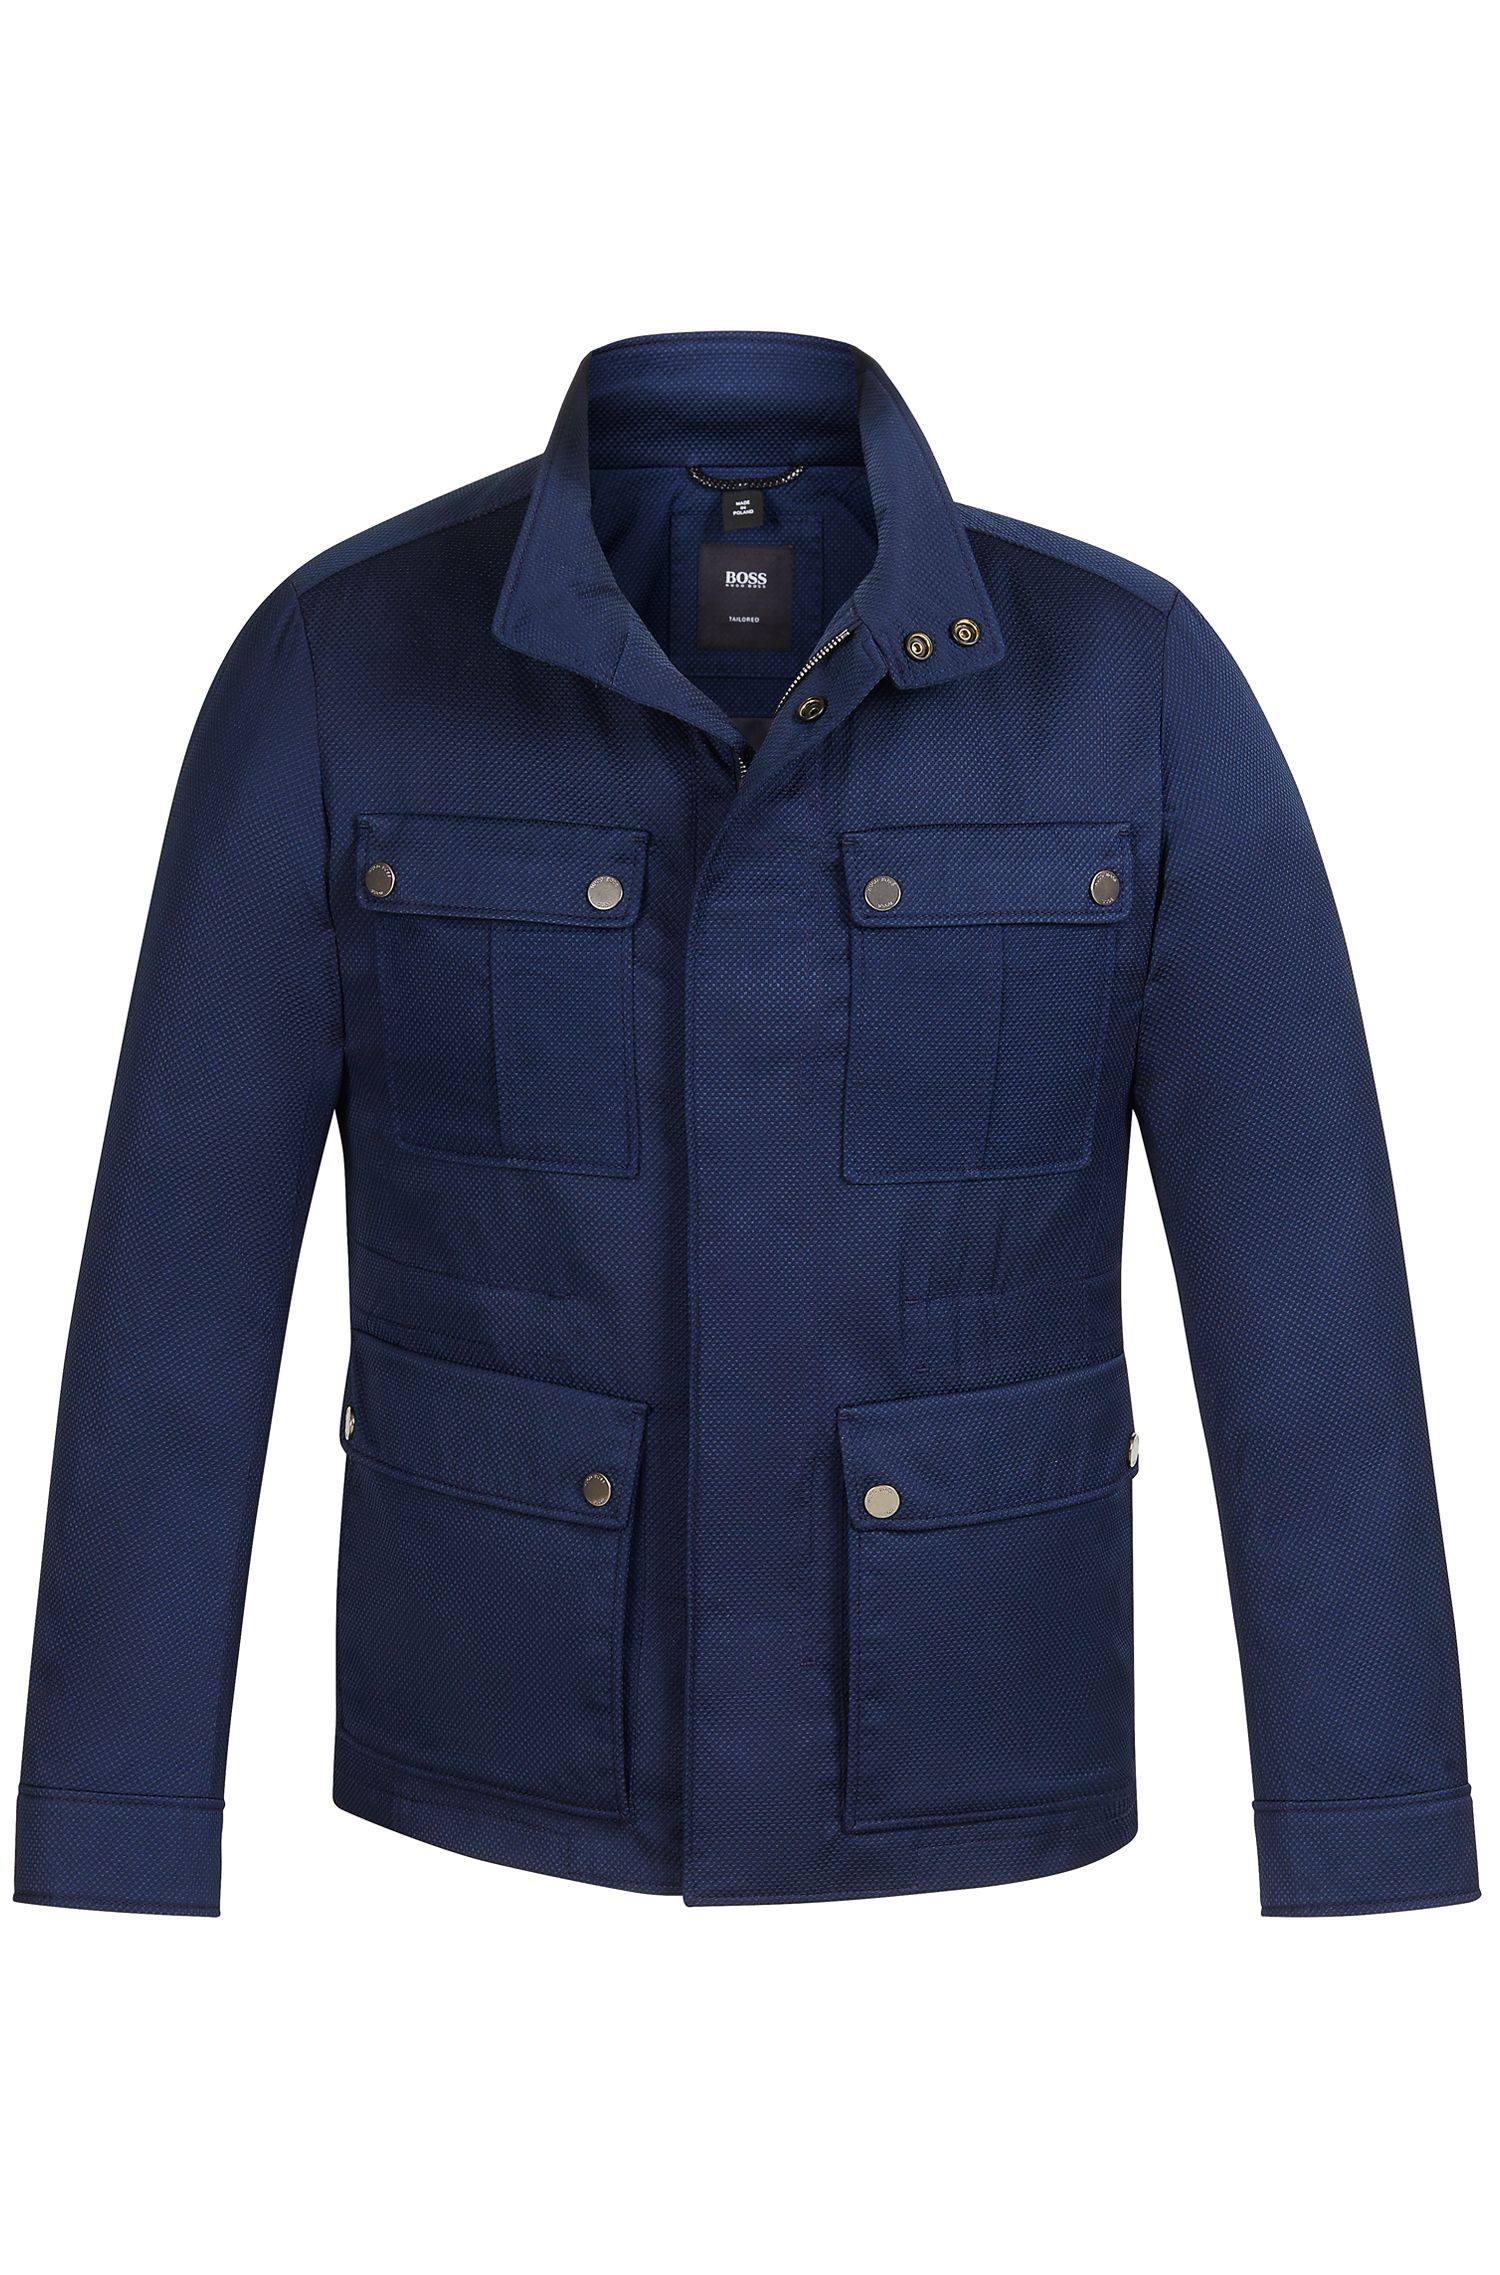 'T-Cuvent' | Tailored Field Jacket